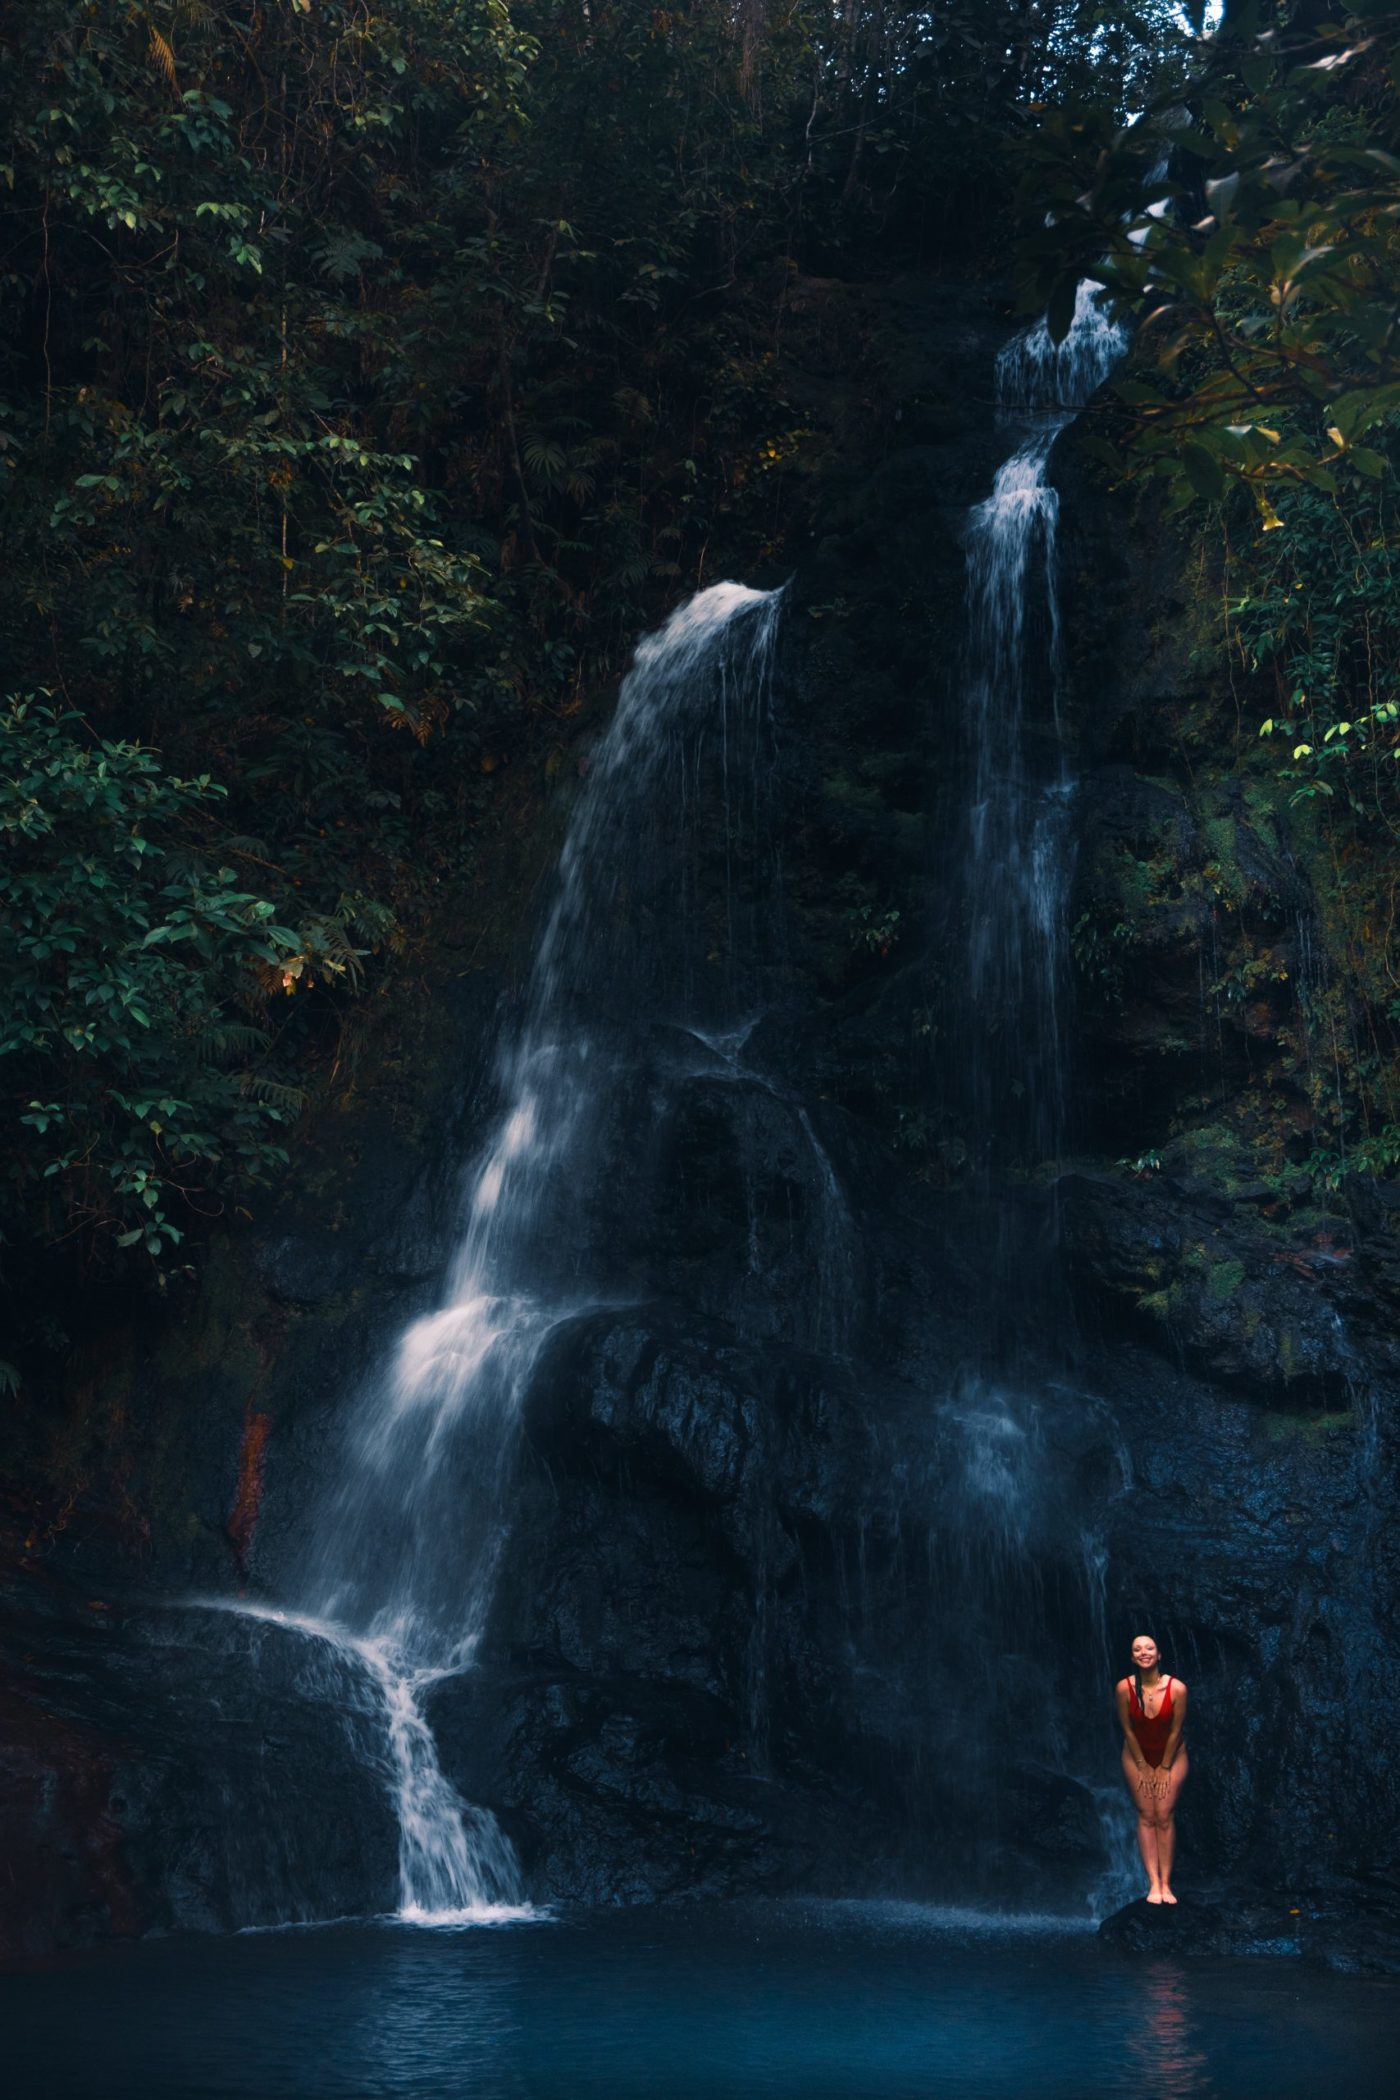 Hiking trail ending at a waterfall and swimming pool